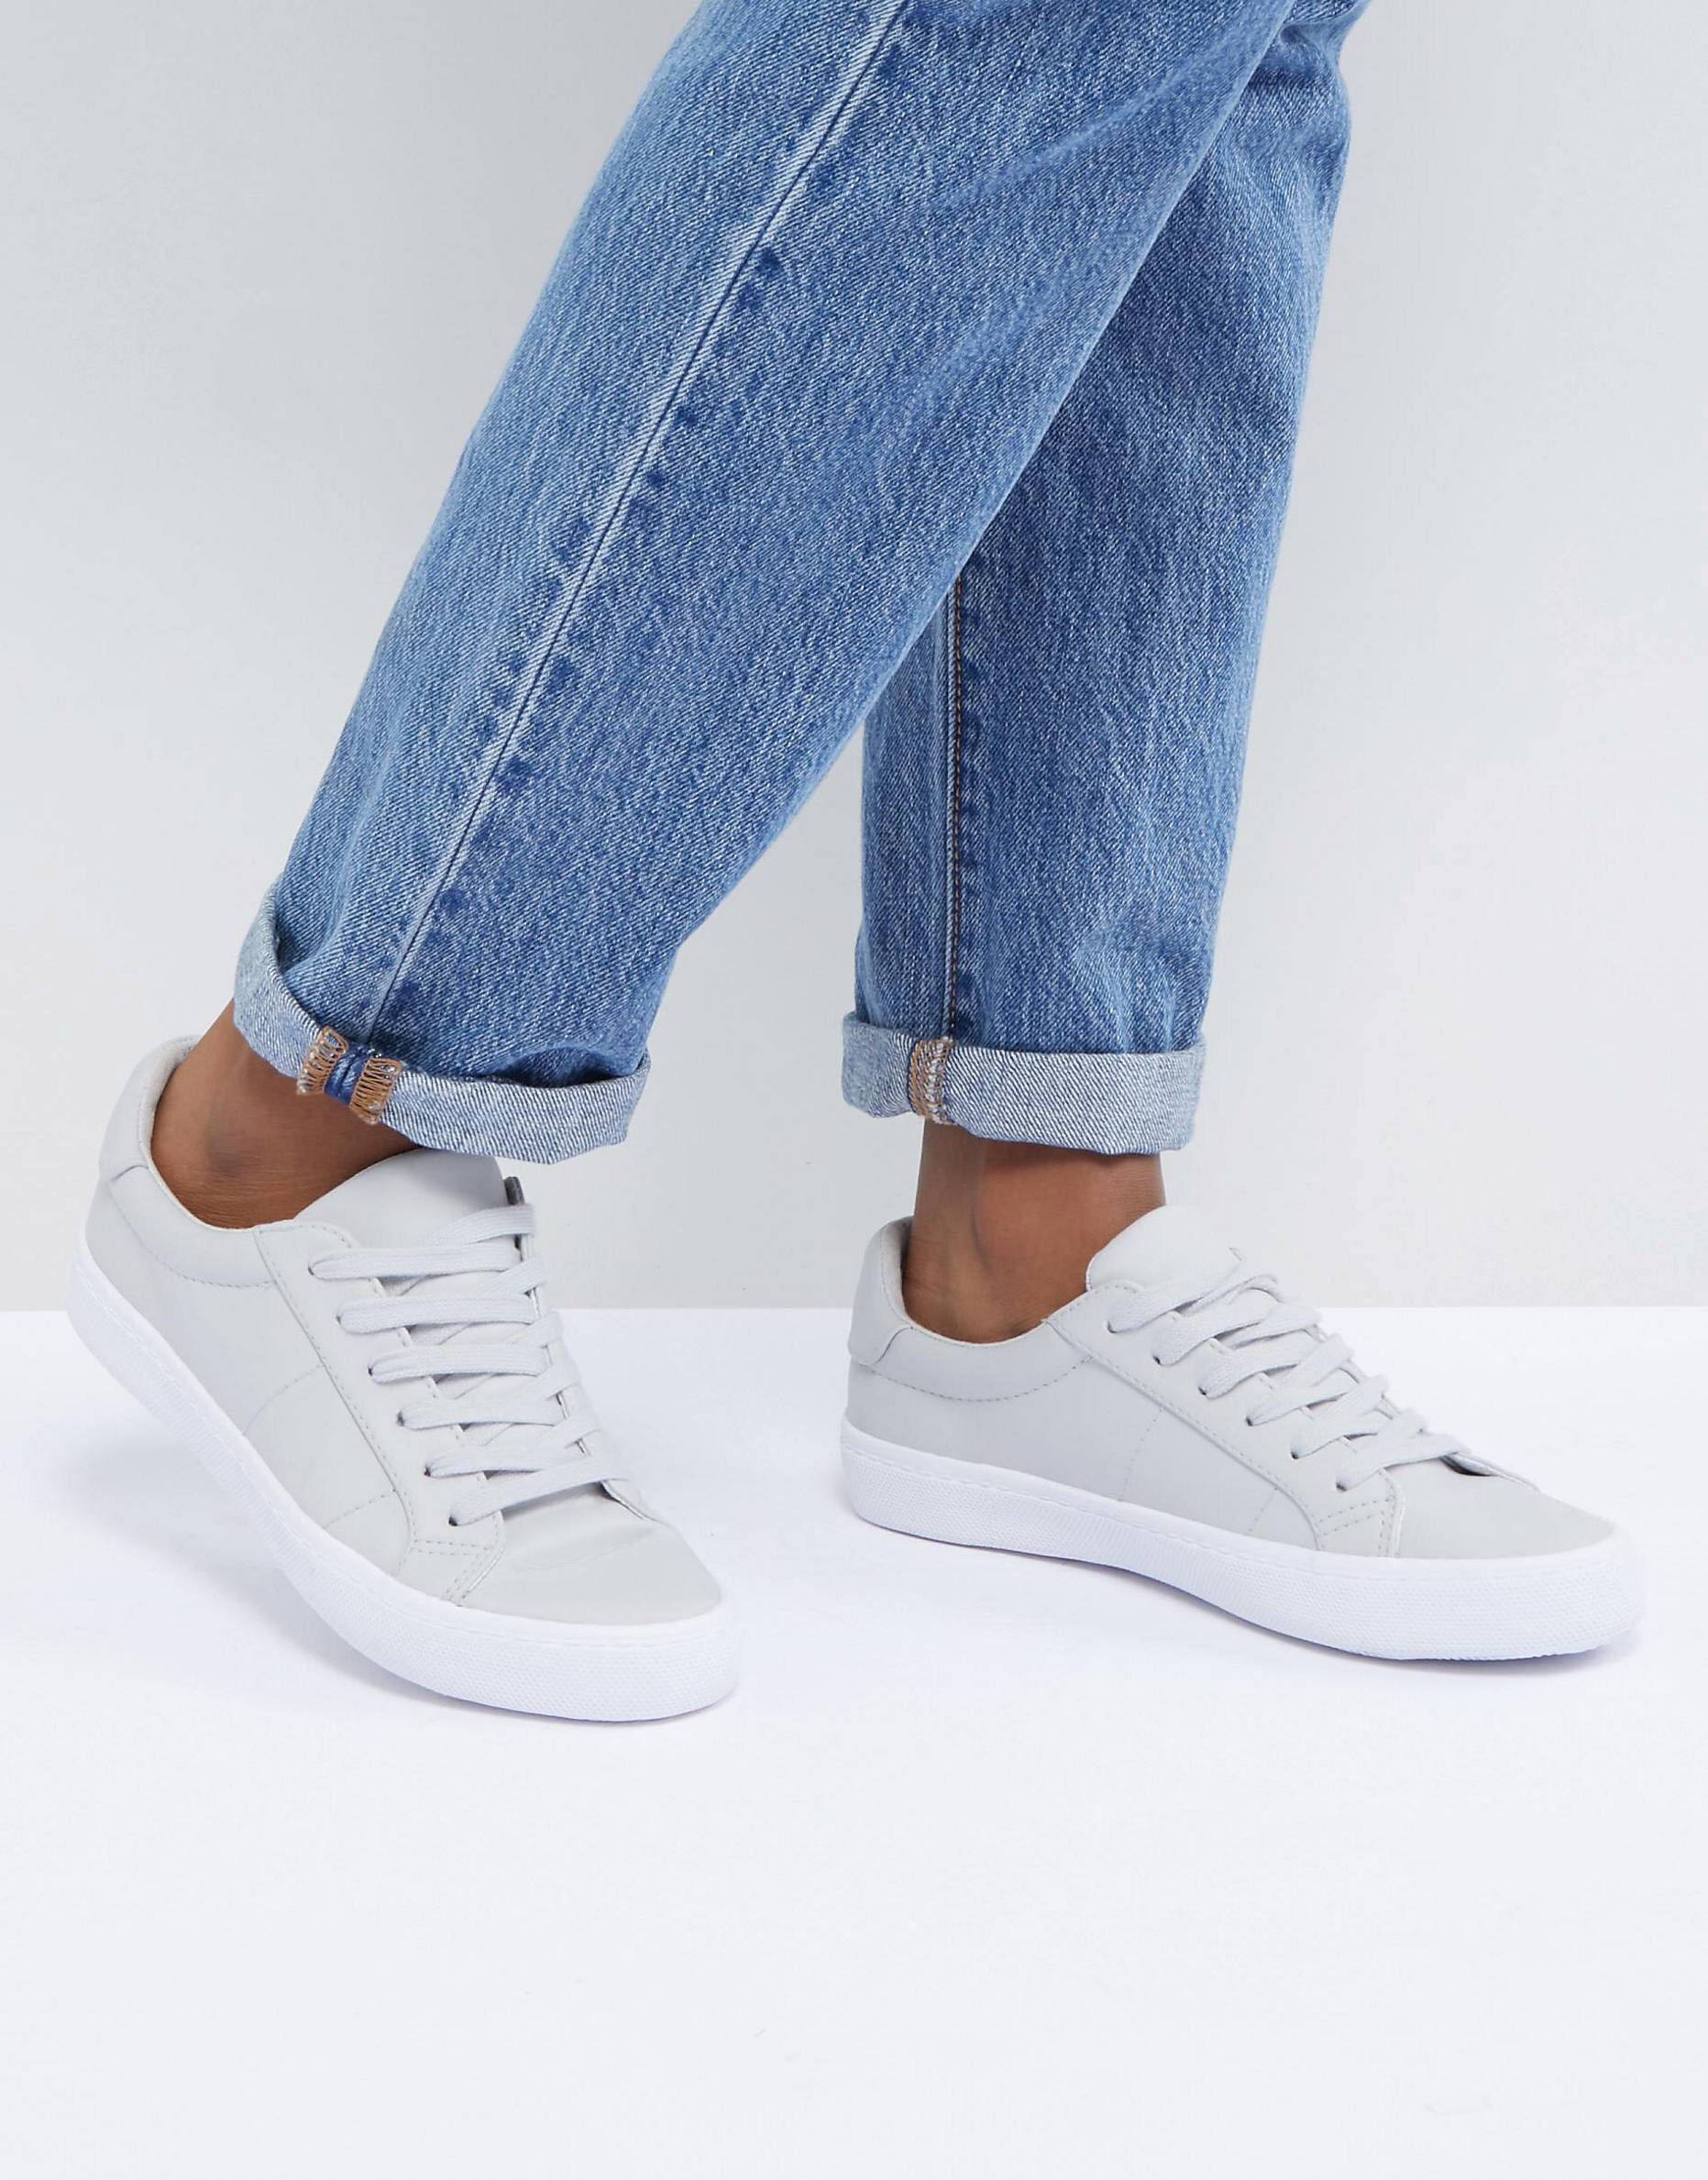 c0e46acd9a1 Just when I thought I didn t need something new from ASOS